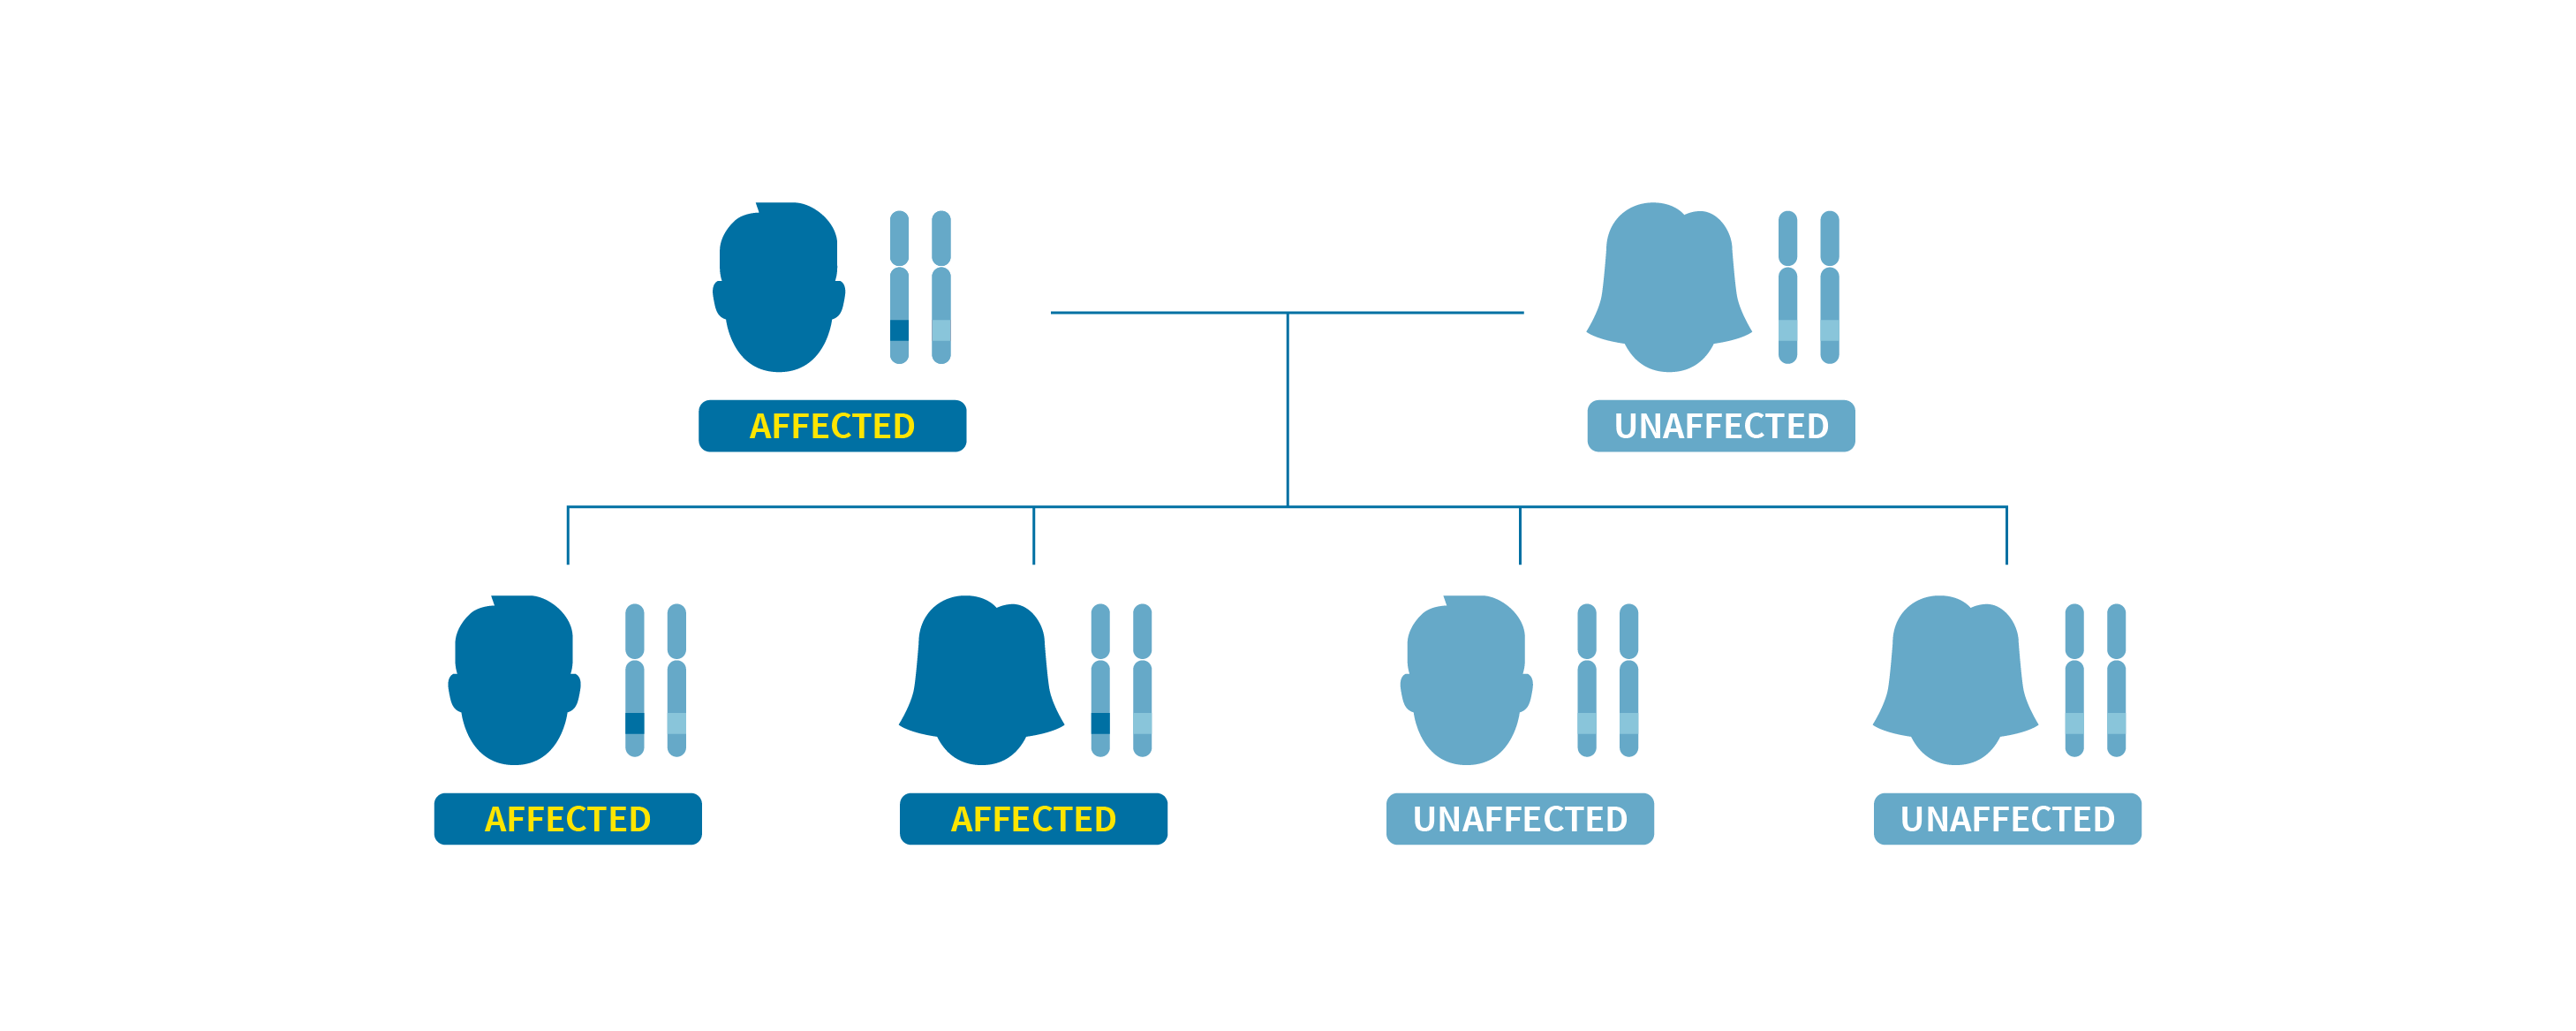 A family tree showing the autosomal dominant inheritance pattern of Coffin-Siris syndrome